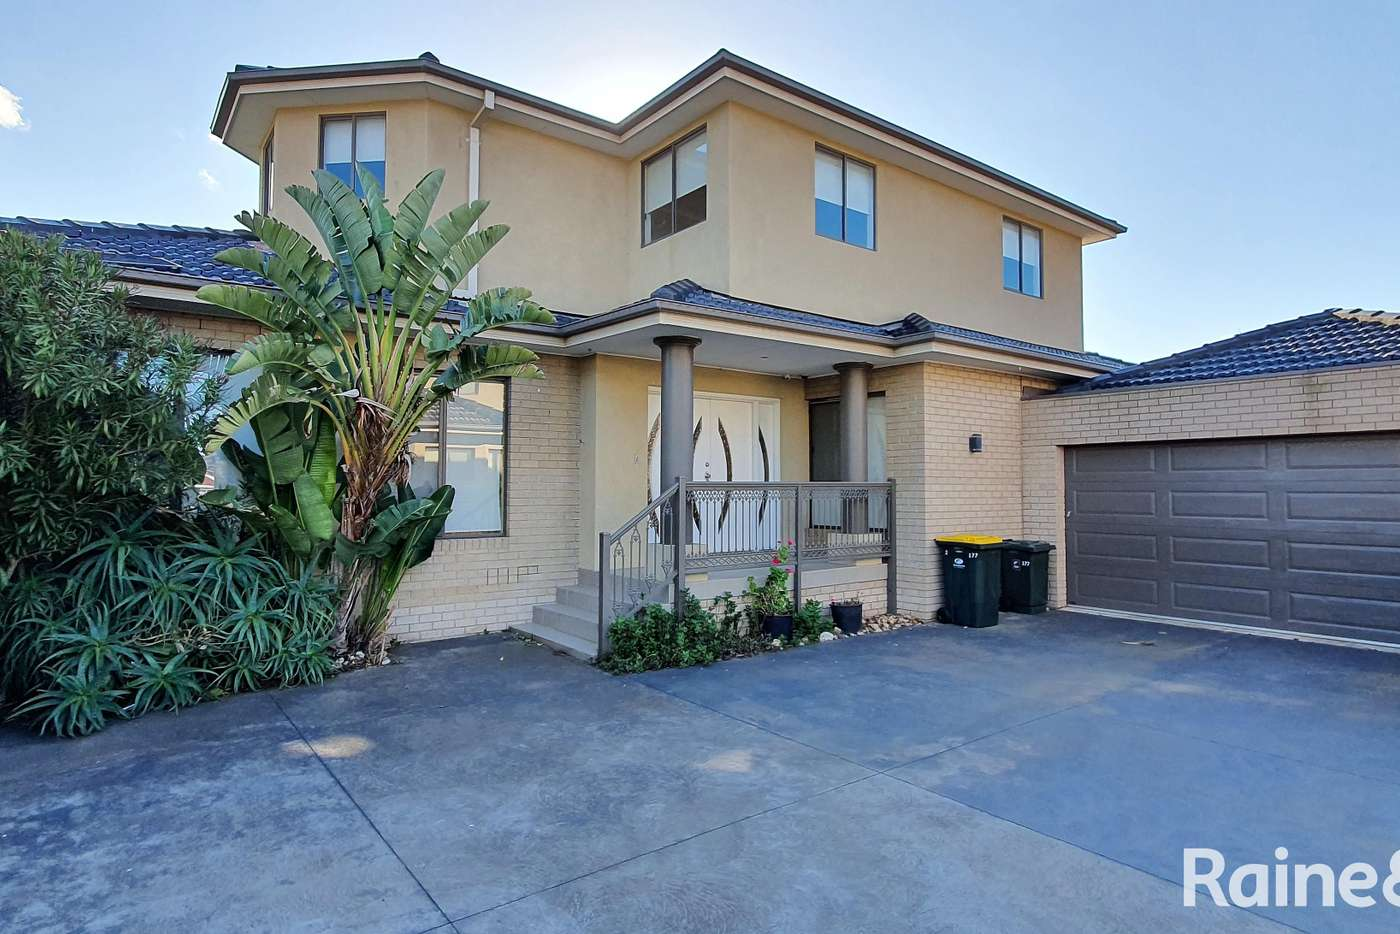 Main view of Homely house listing, 2/177 Copernicus Way, Keilor Downs VIC 3038